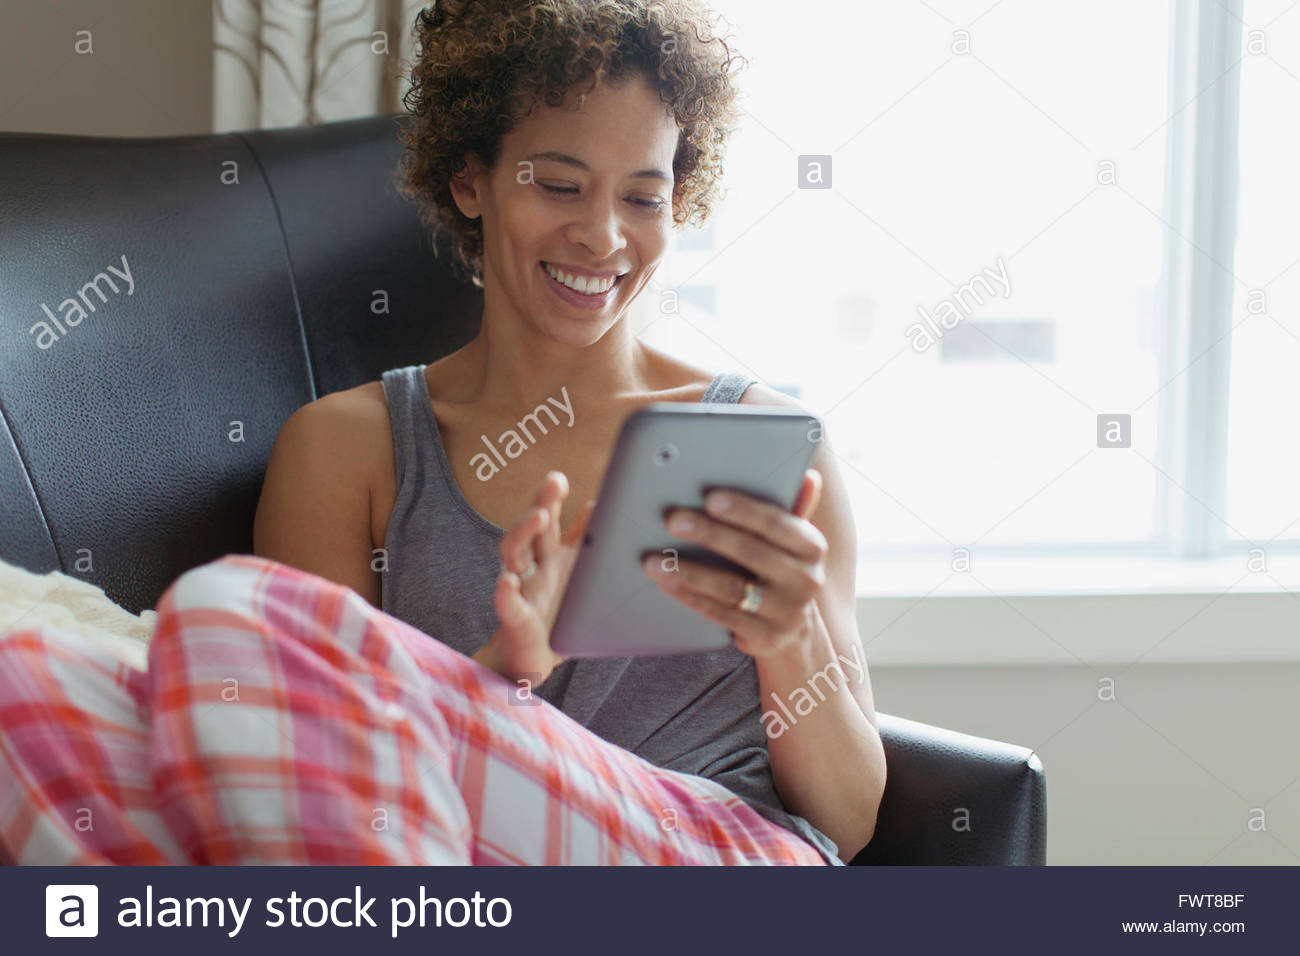 Woman using tablet computer at home. Photo Stock